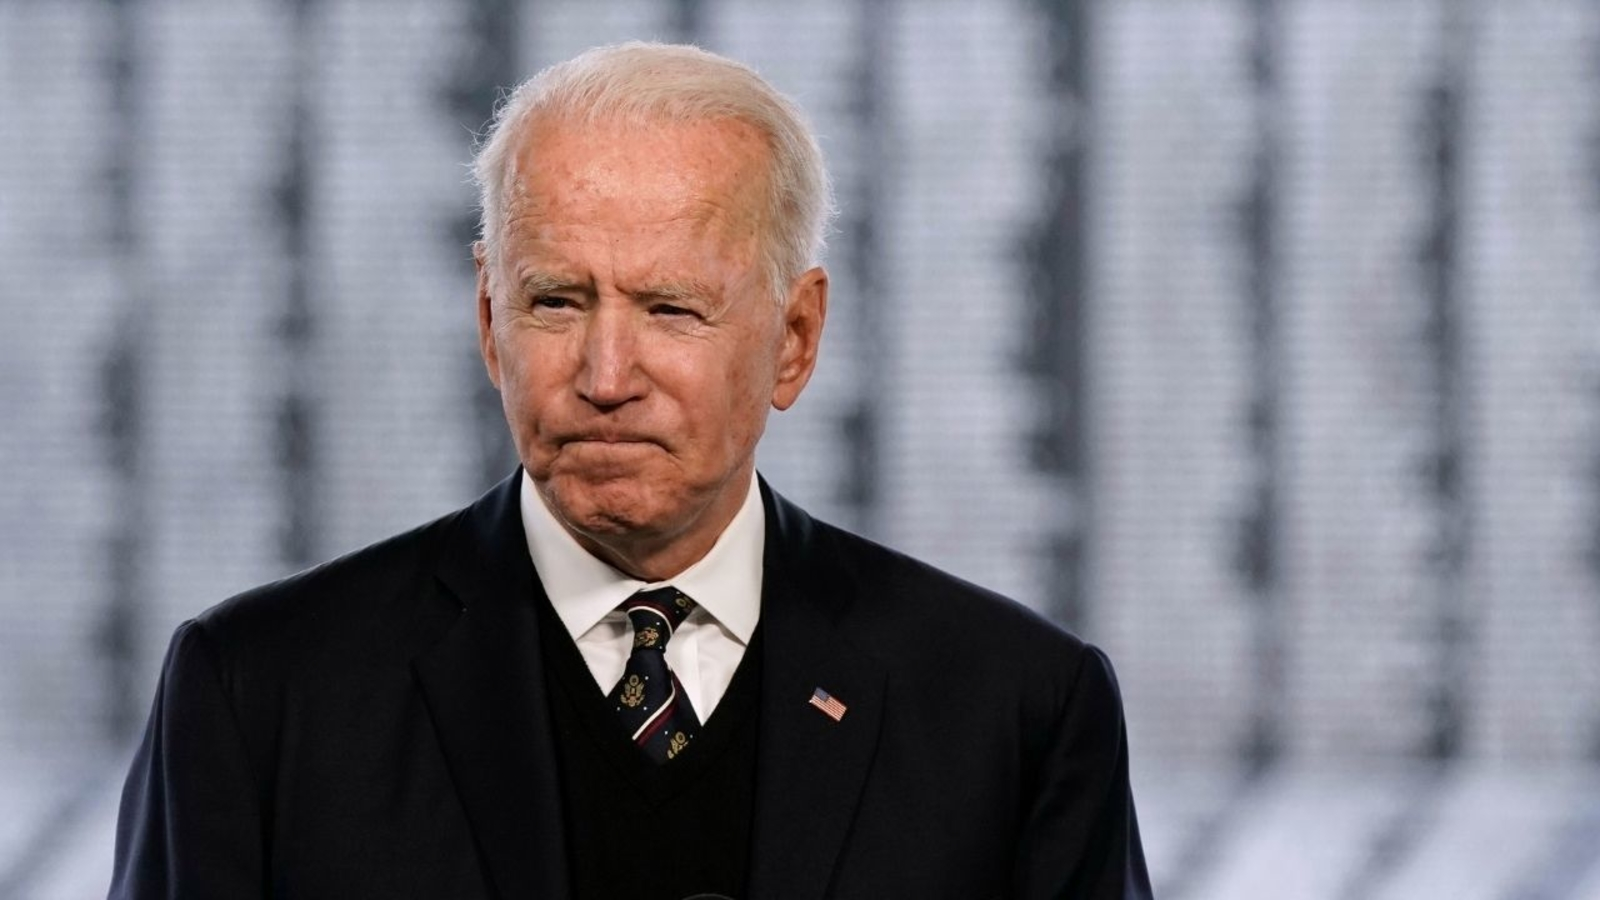 For President Biden, a deeply personal Memorial Day weekend observance